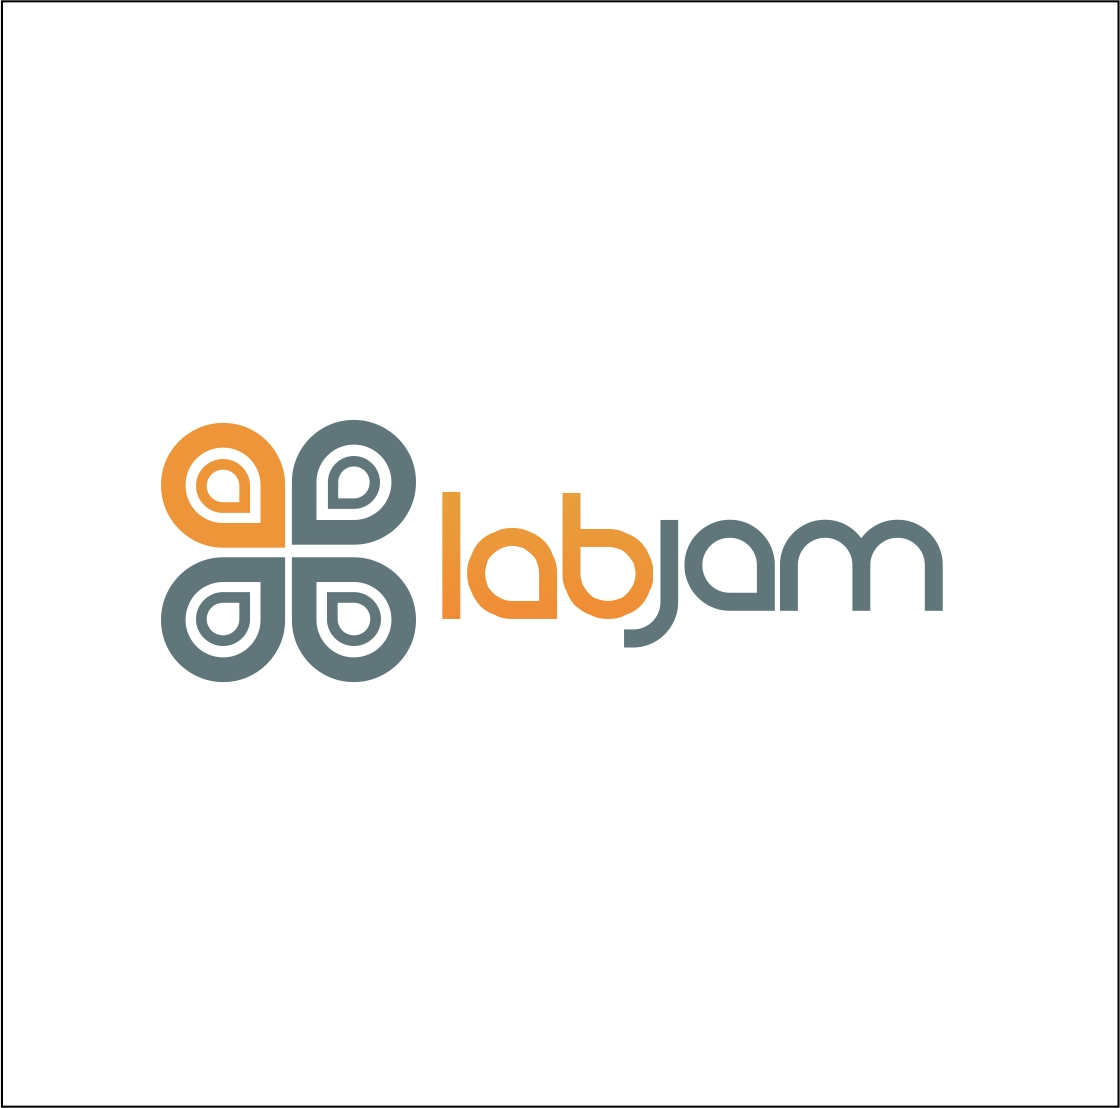 Logo Design by arkvisdesigns - Entry No. 191 in the Logo Design Contest Labjam.